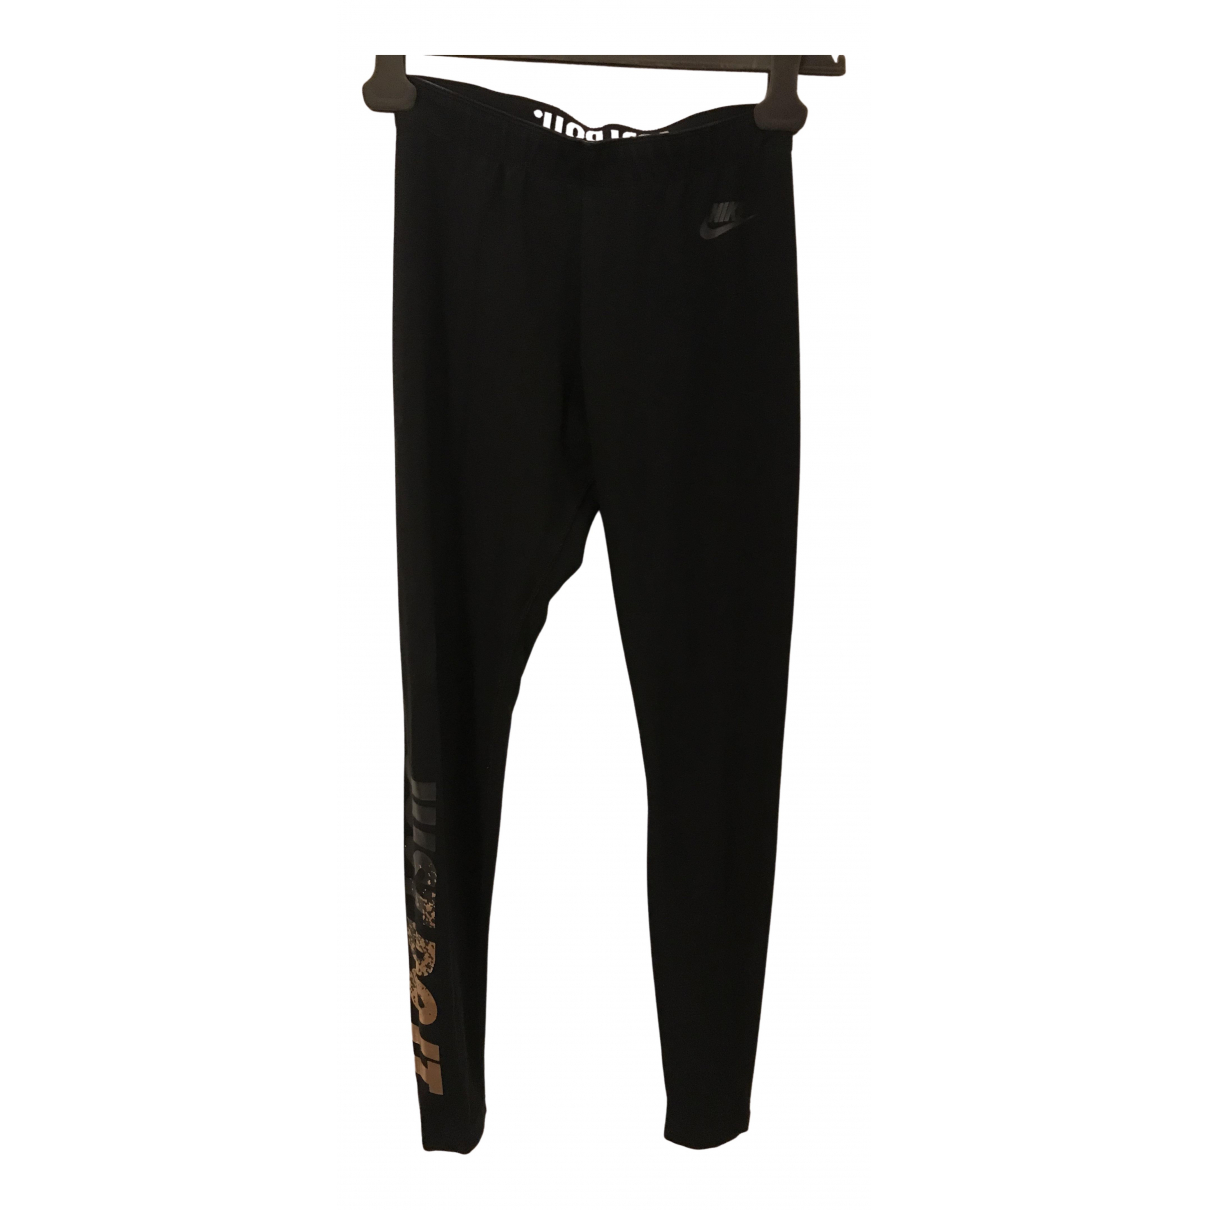 Nike N Black Cotton Trousers for Women S International